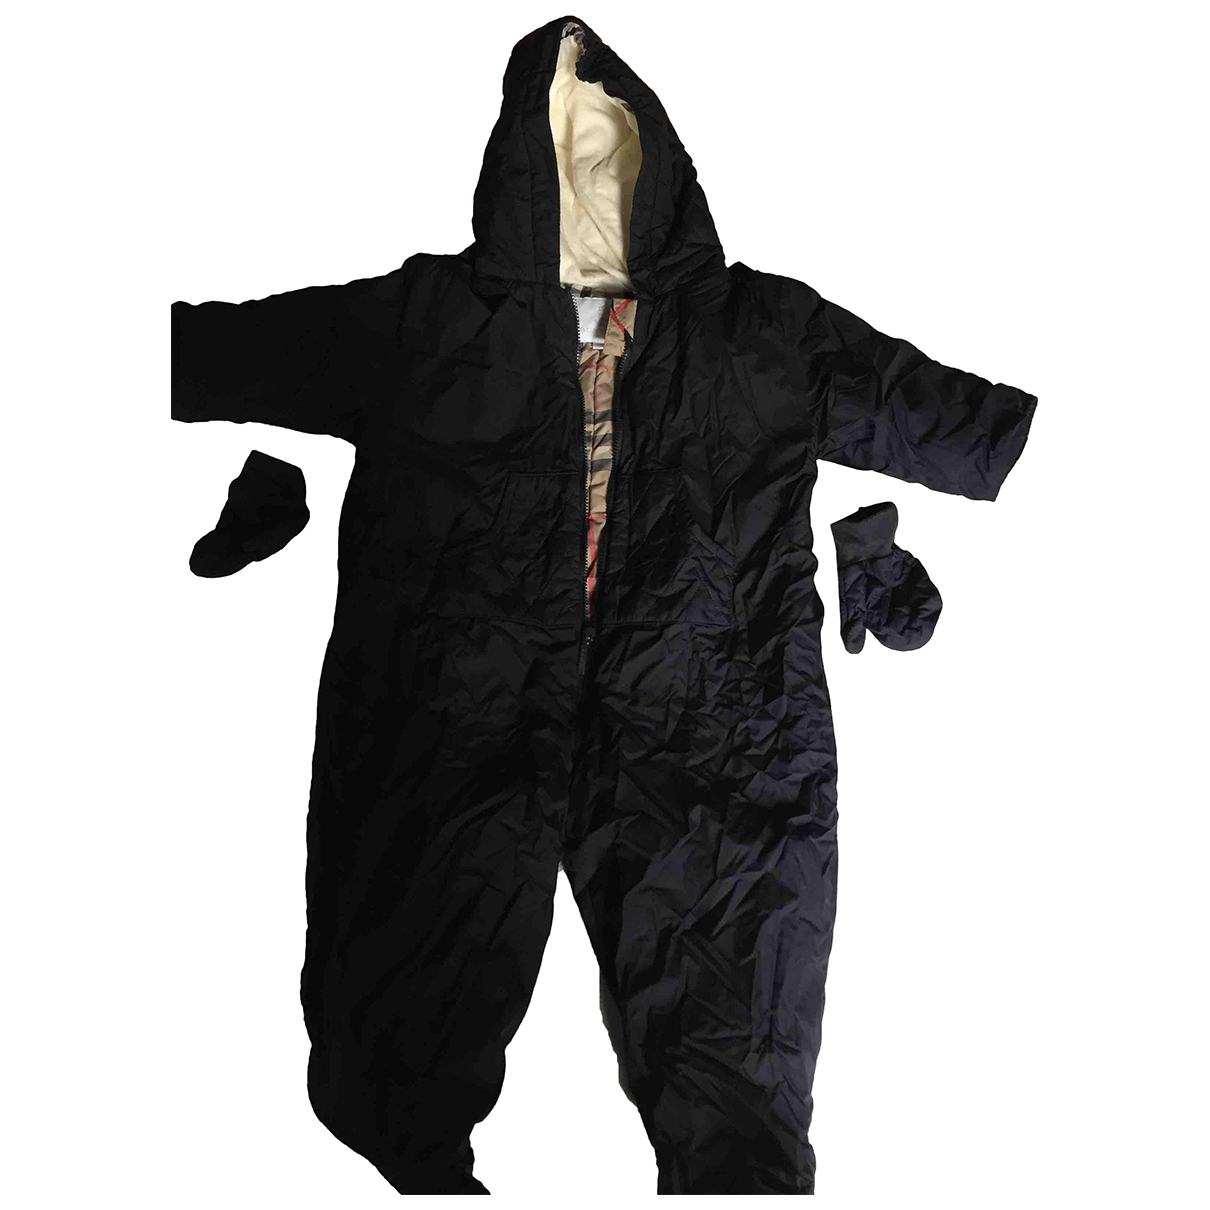 Burberry N Black Outfits for Kids 9 months - up to 71cm FR